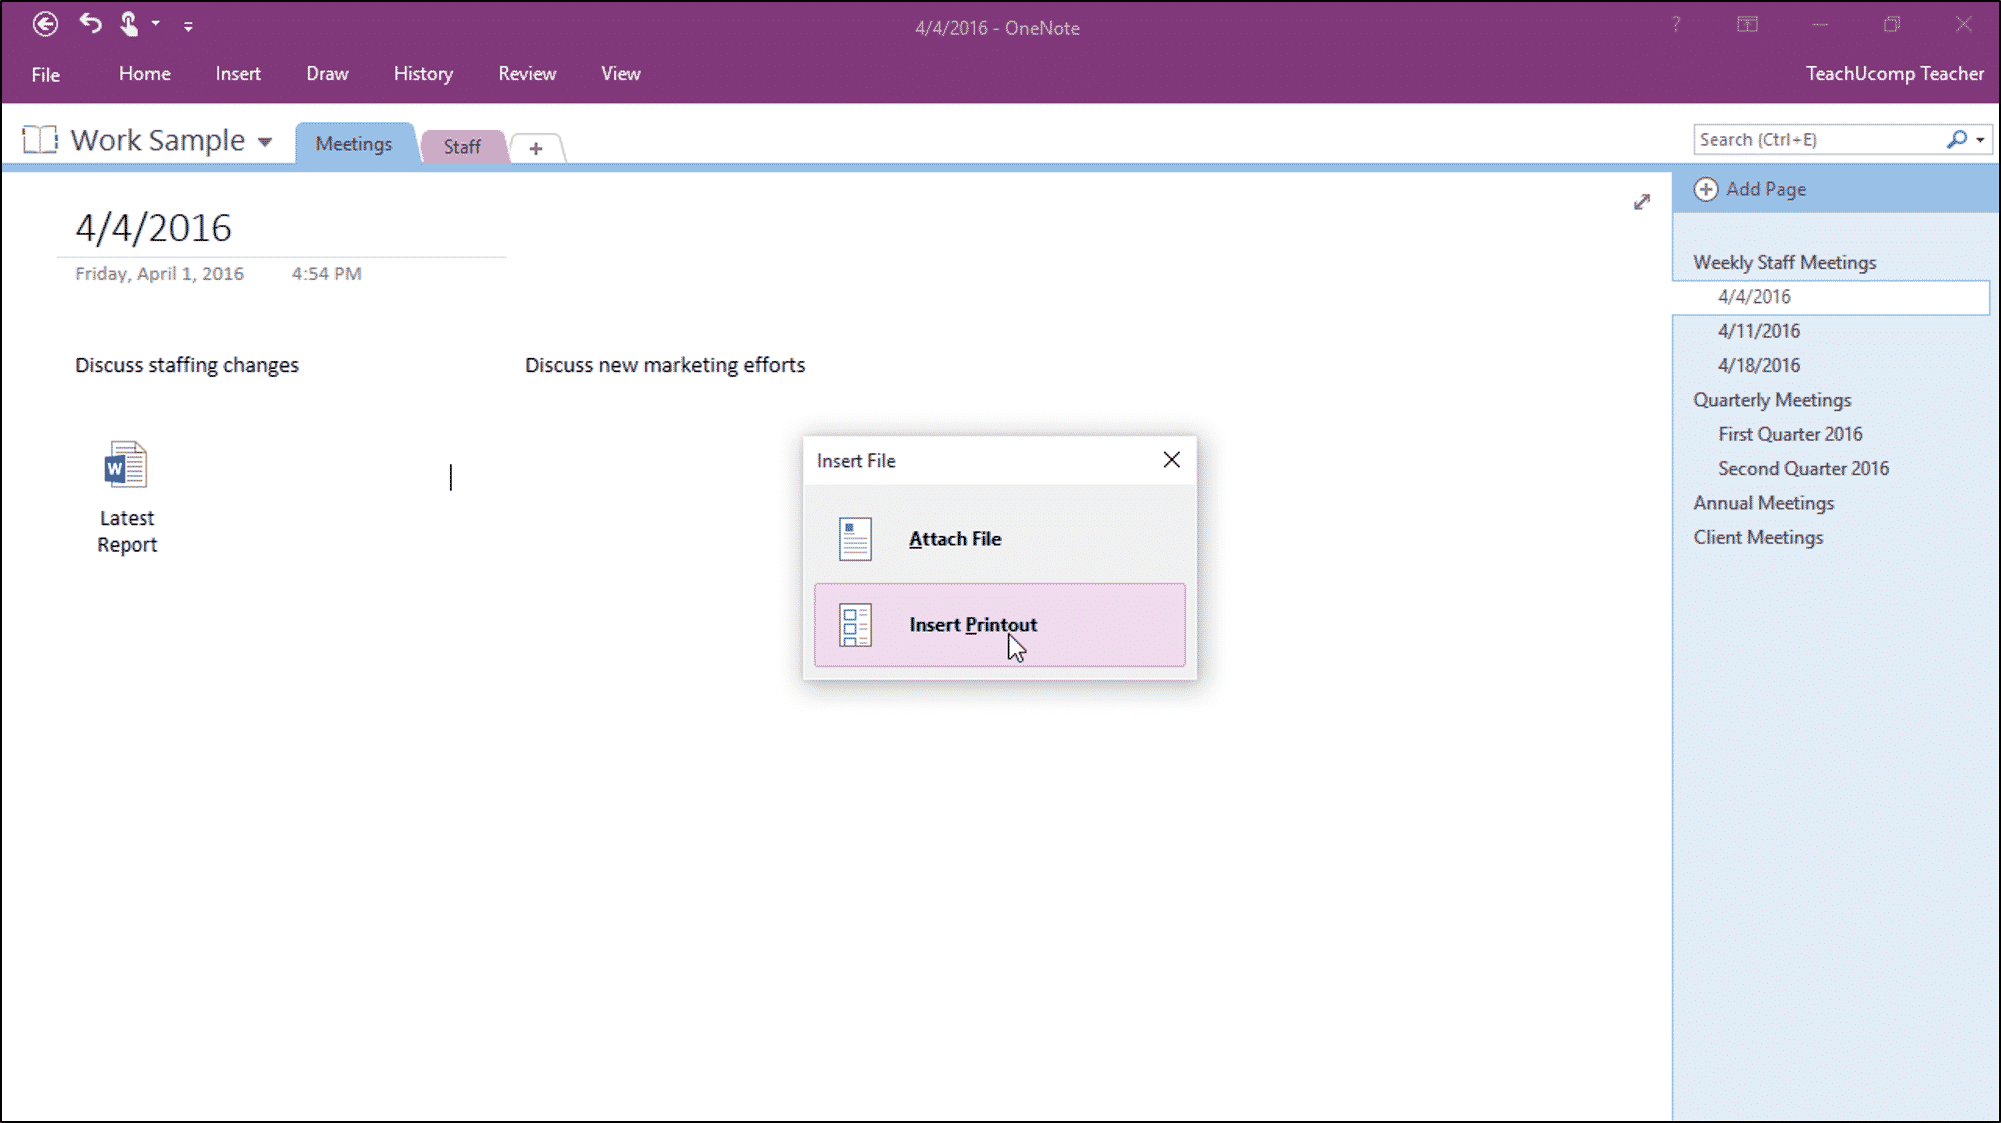 Insert File Attachments in OneNote - Instructions - TeachUcomp, Inc